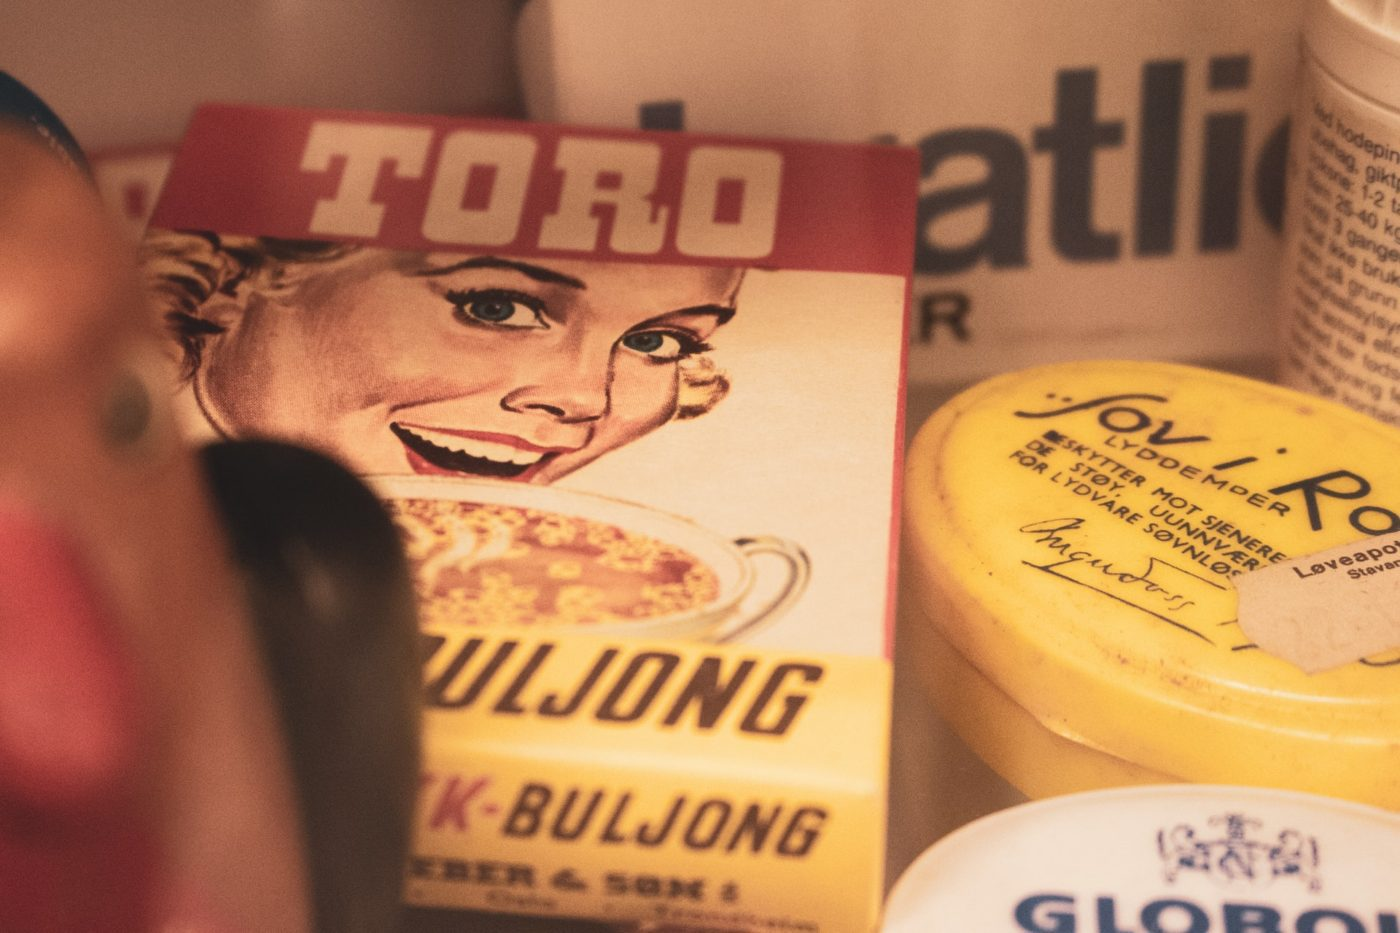 'Does it spark joy?' How to get rid of sentimental possessions - photo of old vintage packaging